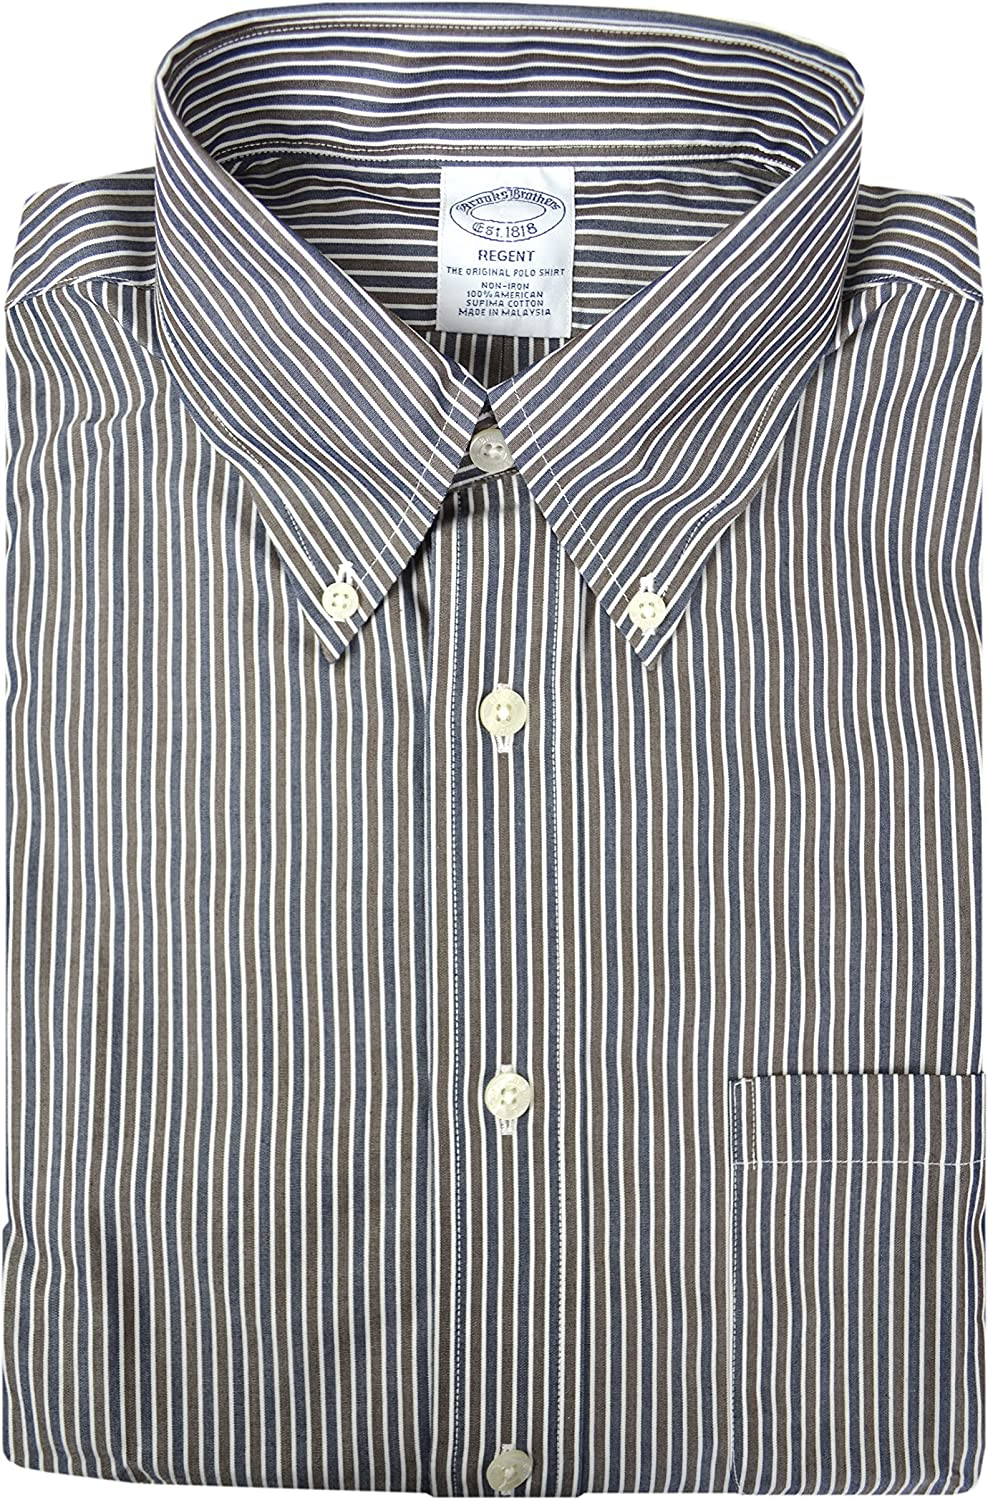 Brooks Brothers Men's Regent Fit Soft Knit Cotton Non Iron Pocketed Dress Shirt Mixed Striped